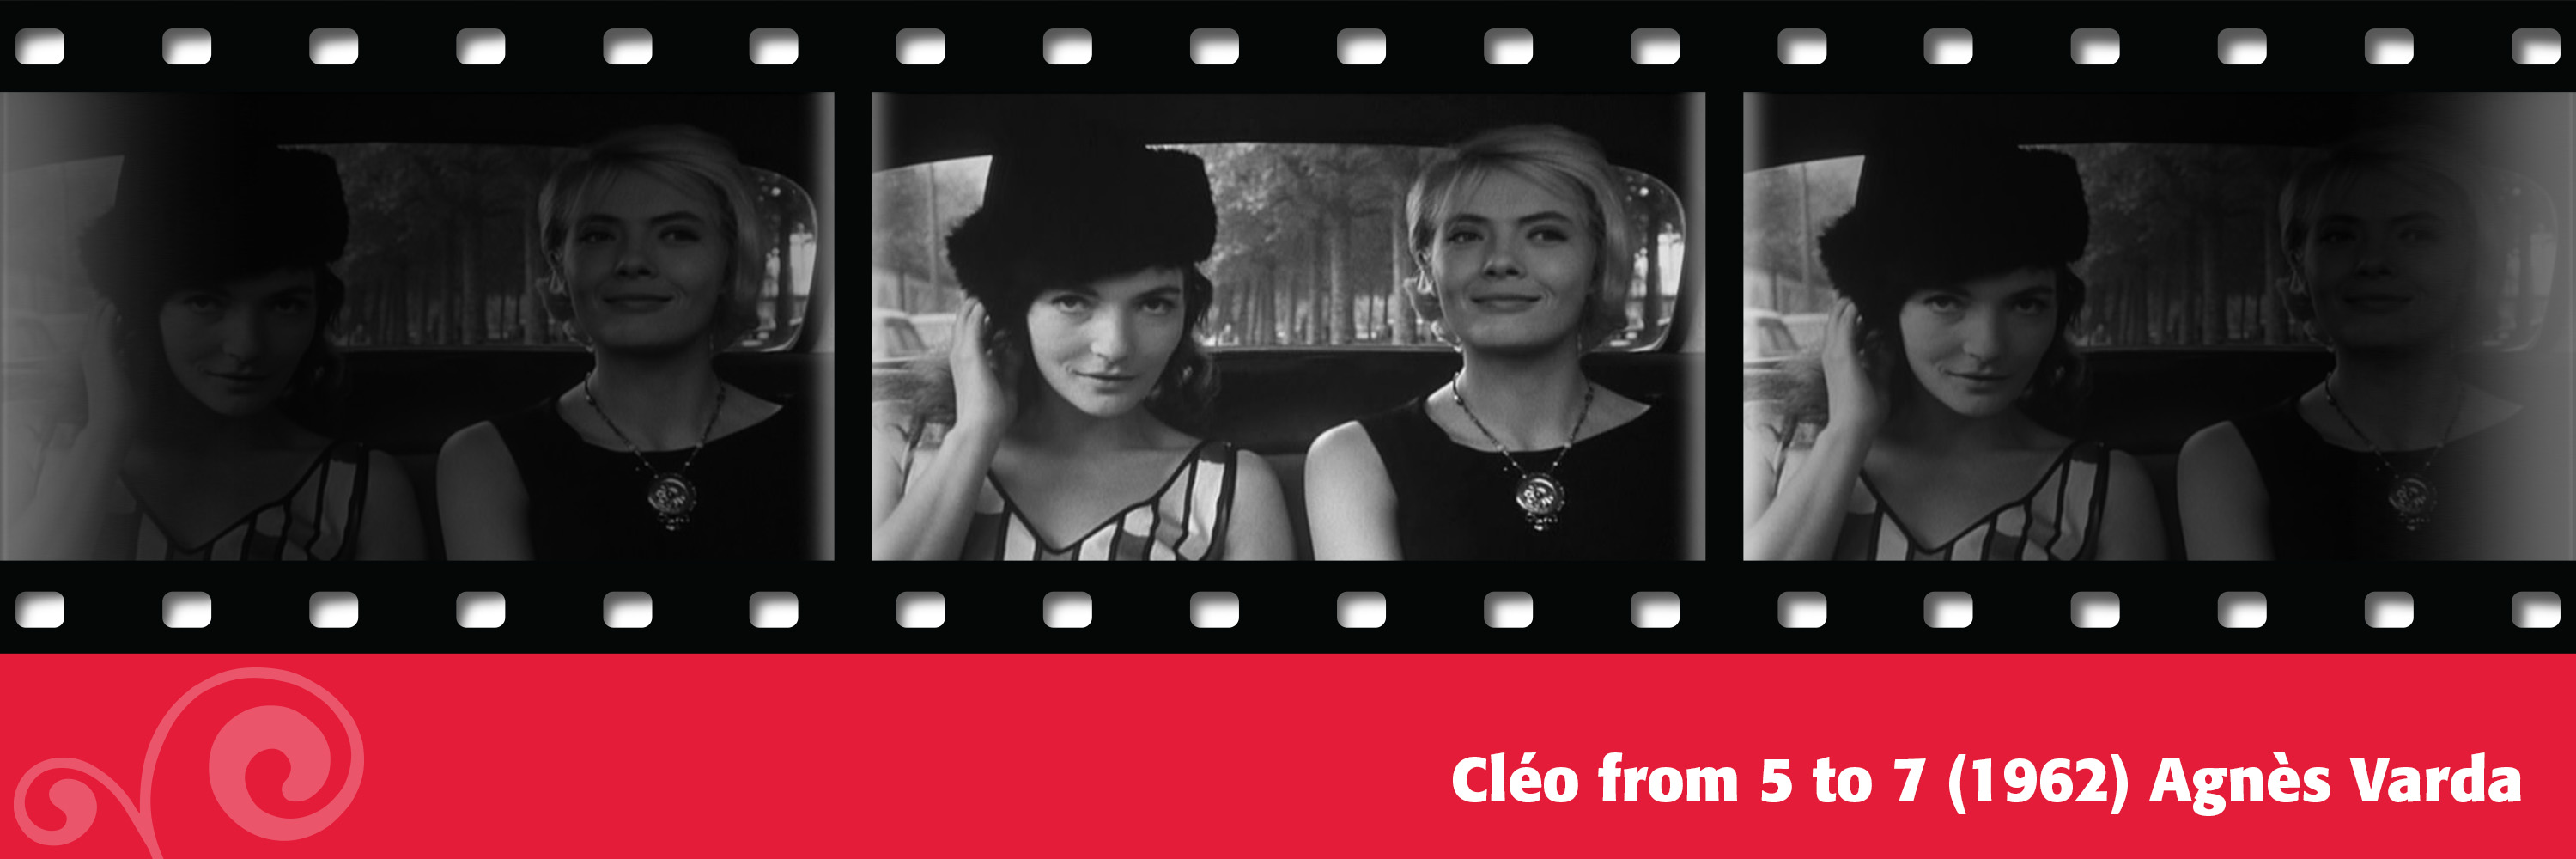 Cléo from 5 to 7 (1973) Agnès Varda